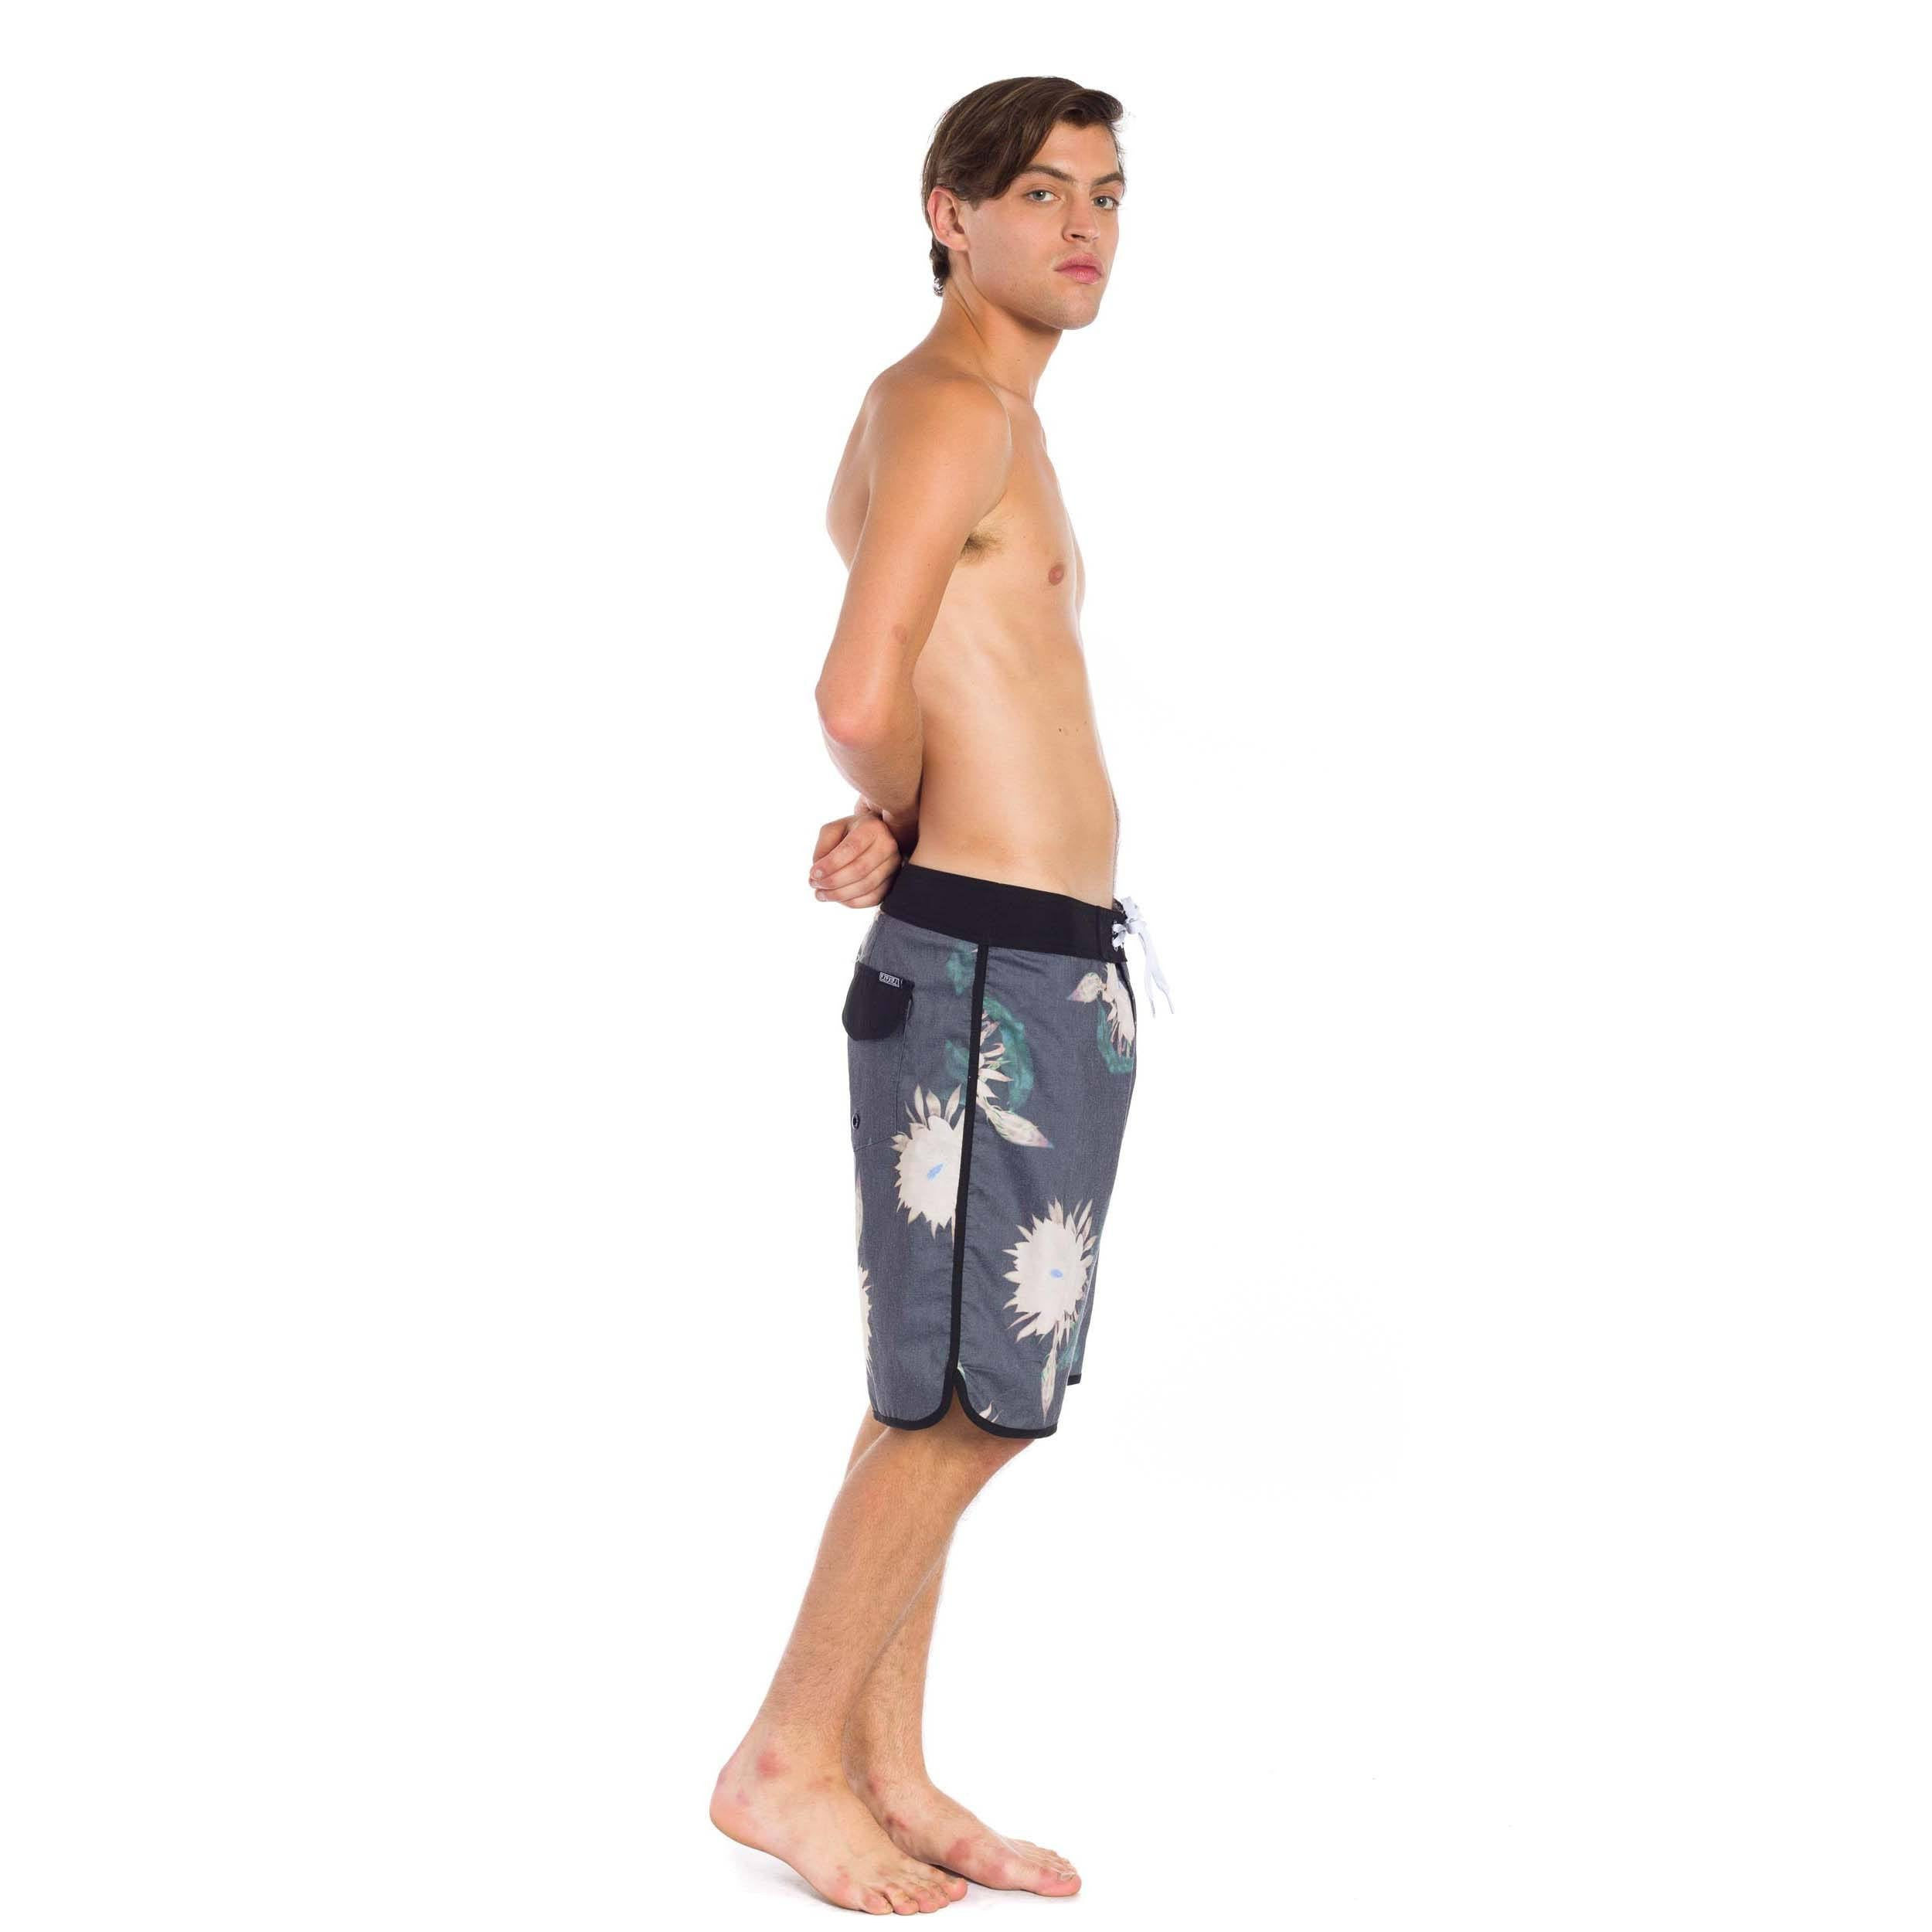 Wander Boardshort - Black